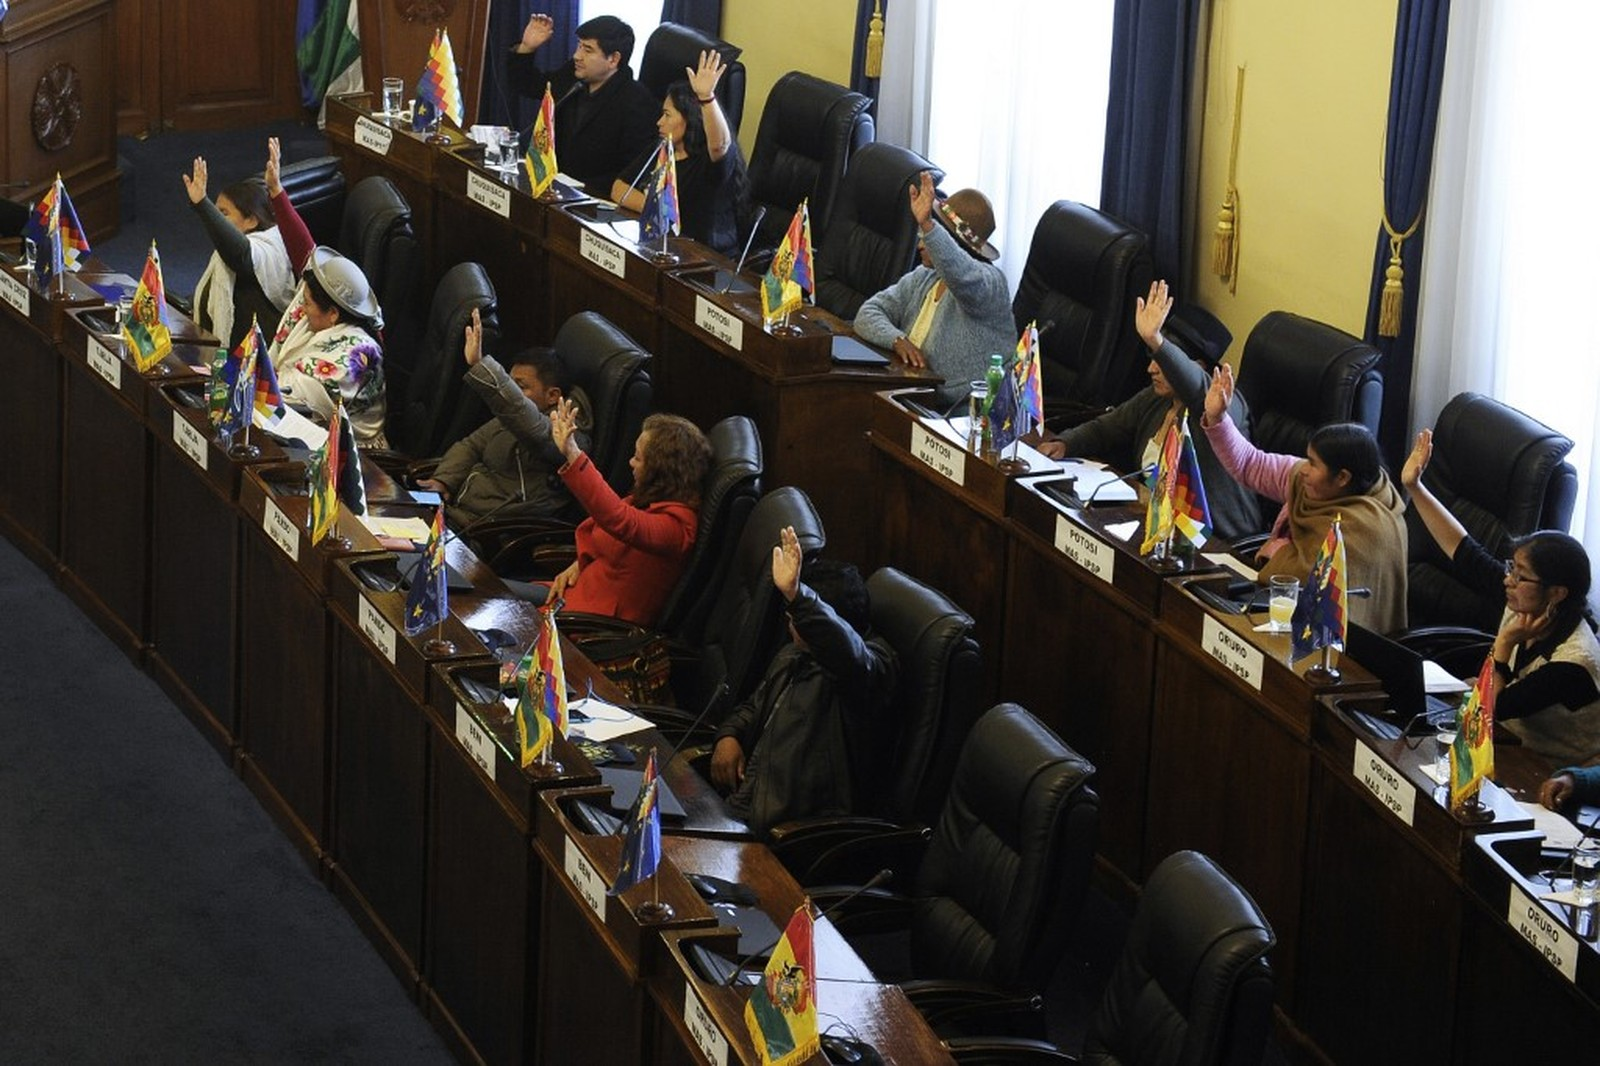 indonesias parliament unanimously approved - HD1600×1066